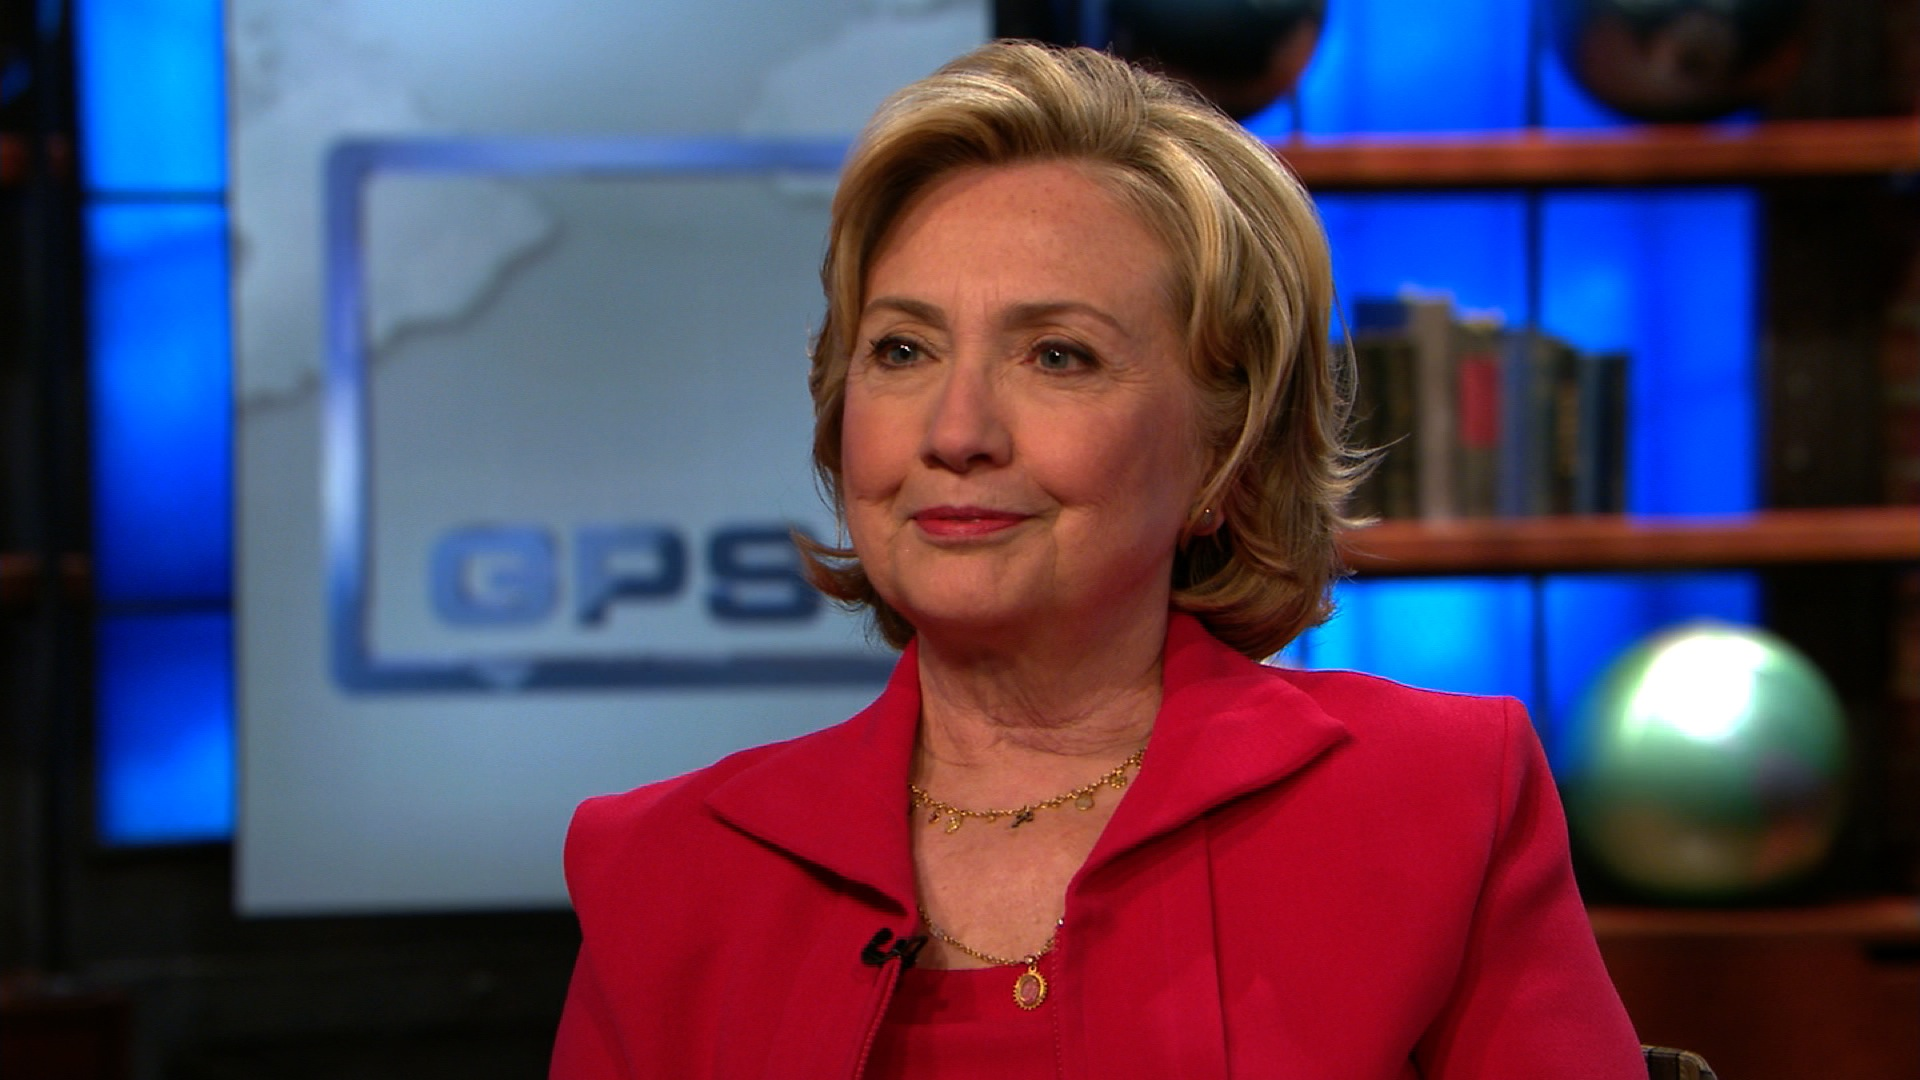 Hillary Clinton defends Obama against conservative barbs